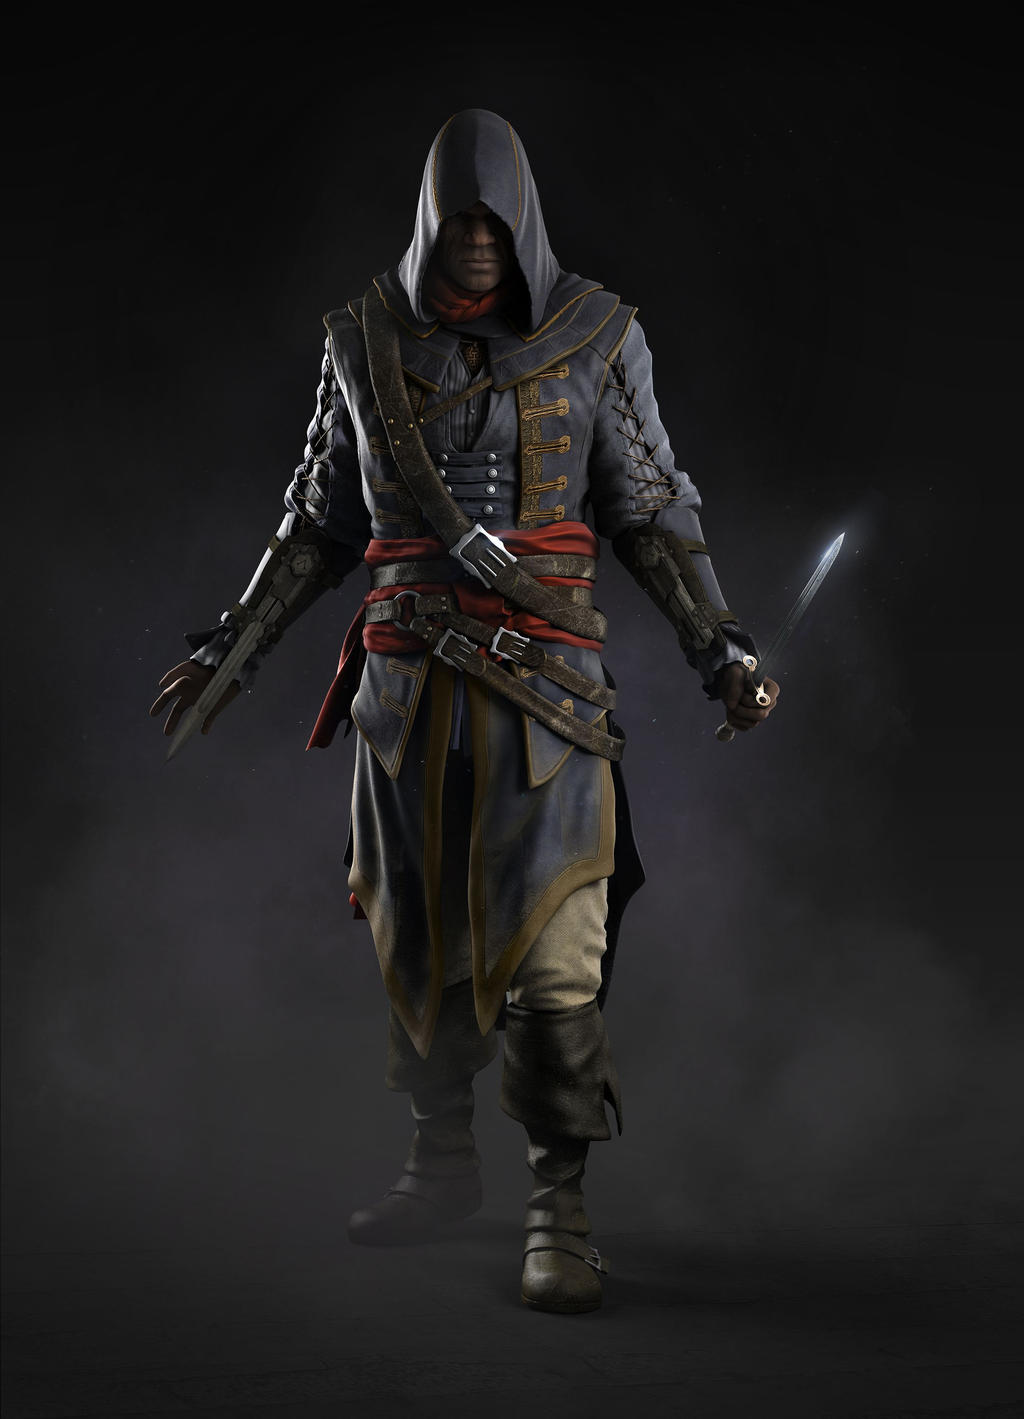 to send us on some pretty tantalizing information for their latest Assassin'ss Creed game, Assassin's Creed Rogue...